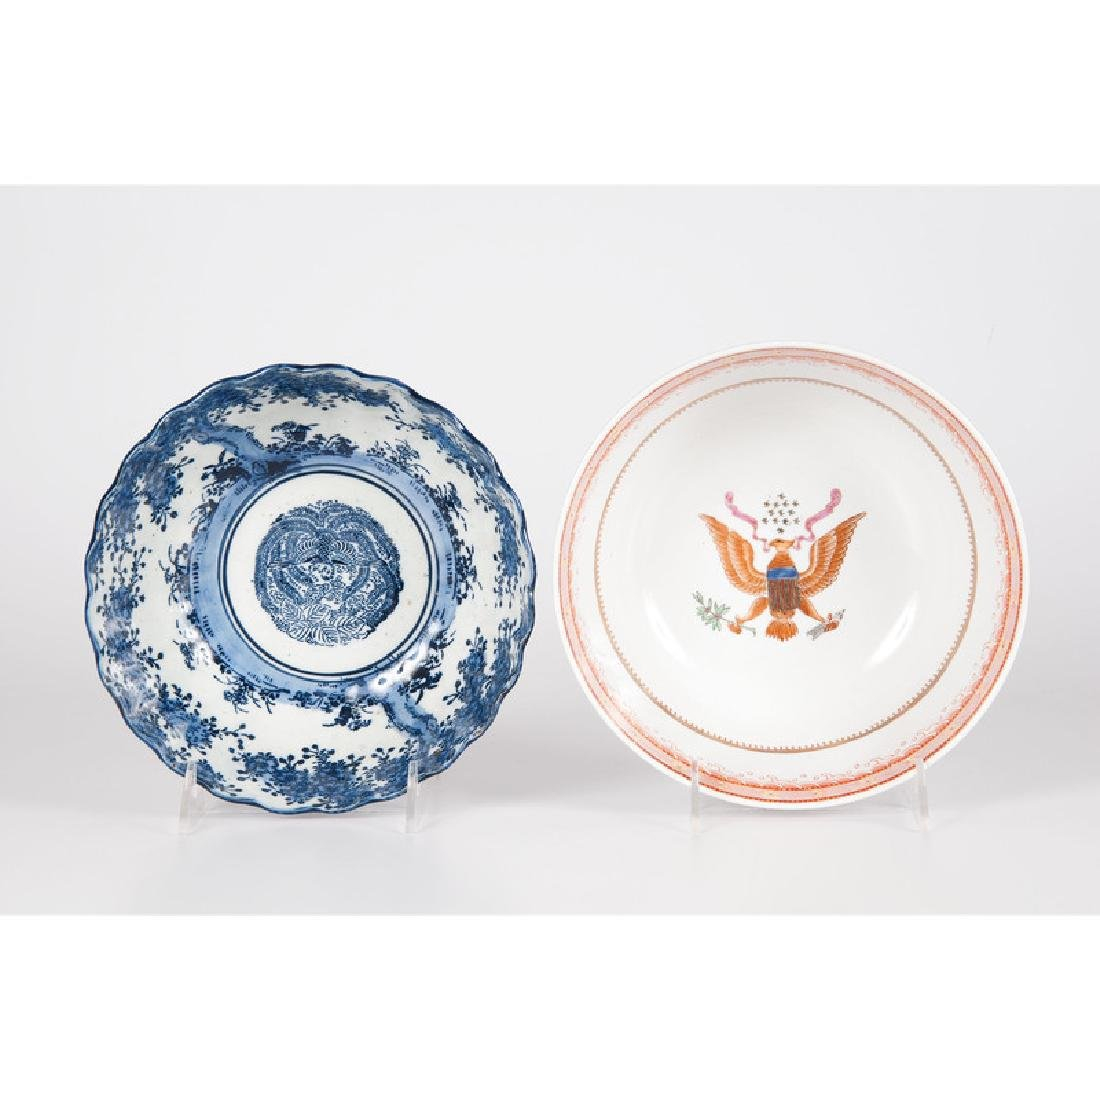 Chinese Export Porcelain Bowls